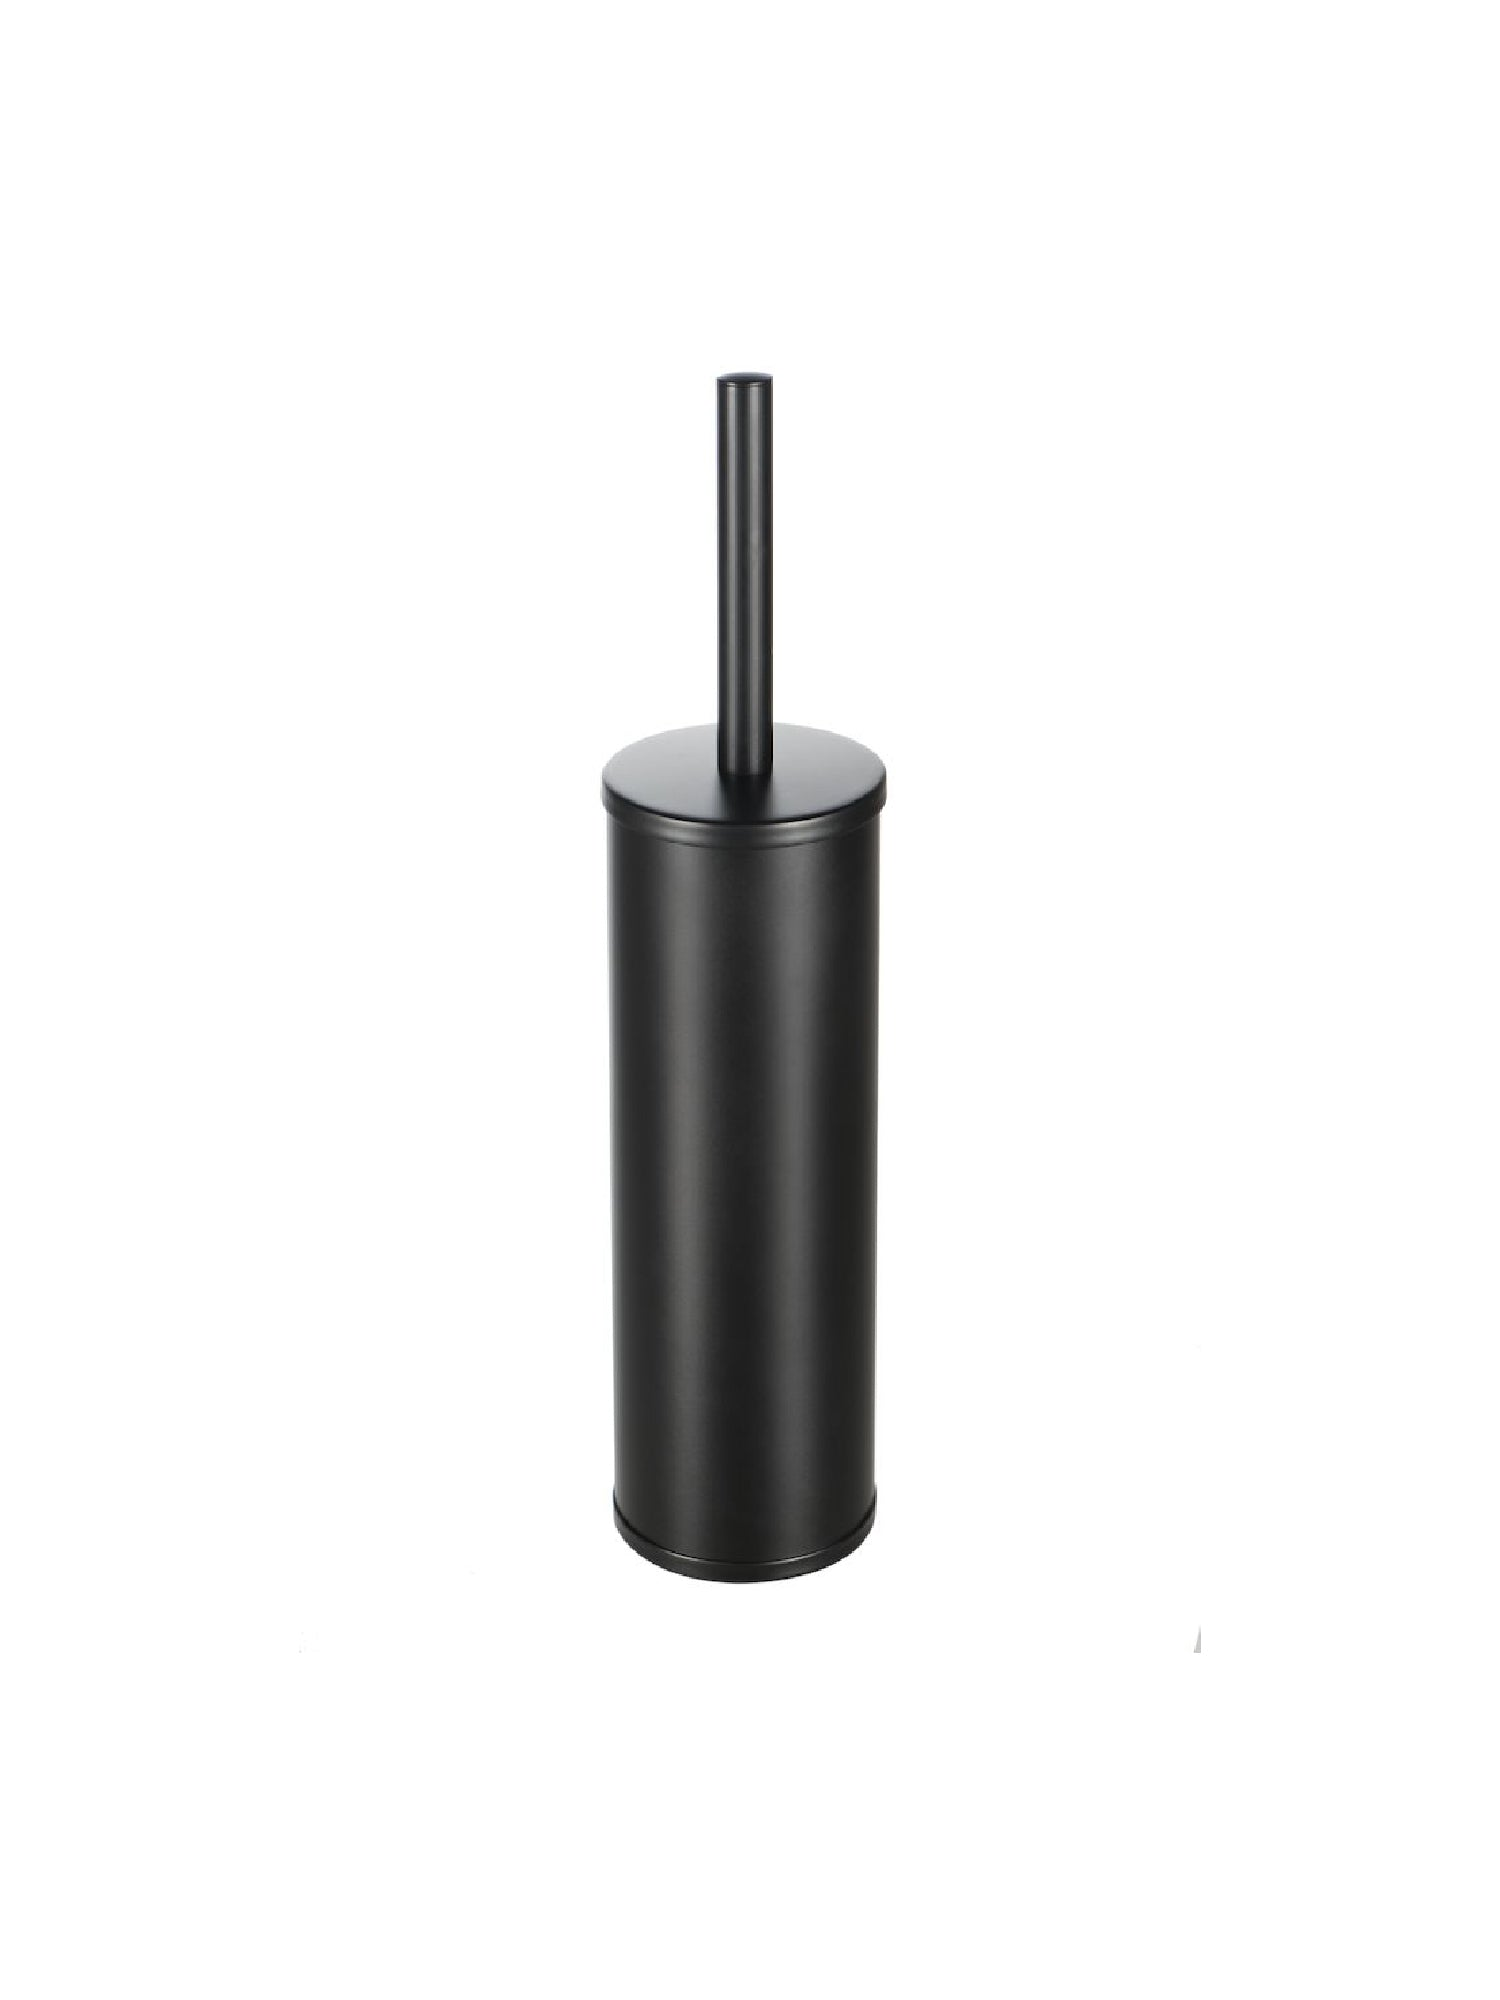 Nemox Black Toilet Brush Holder #6511-66